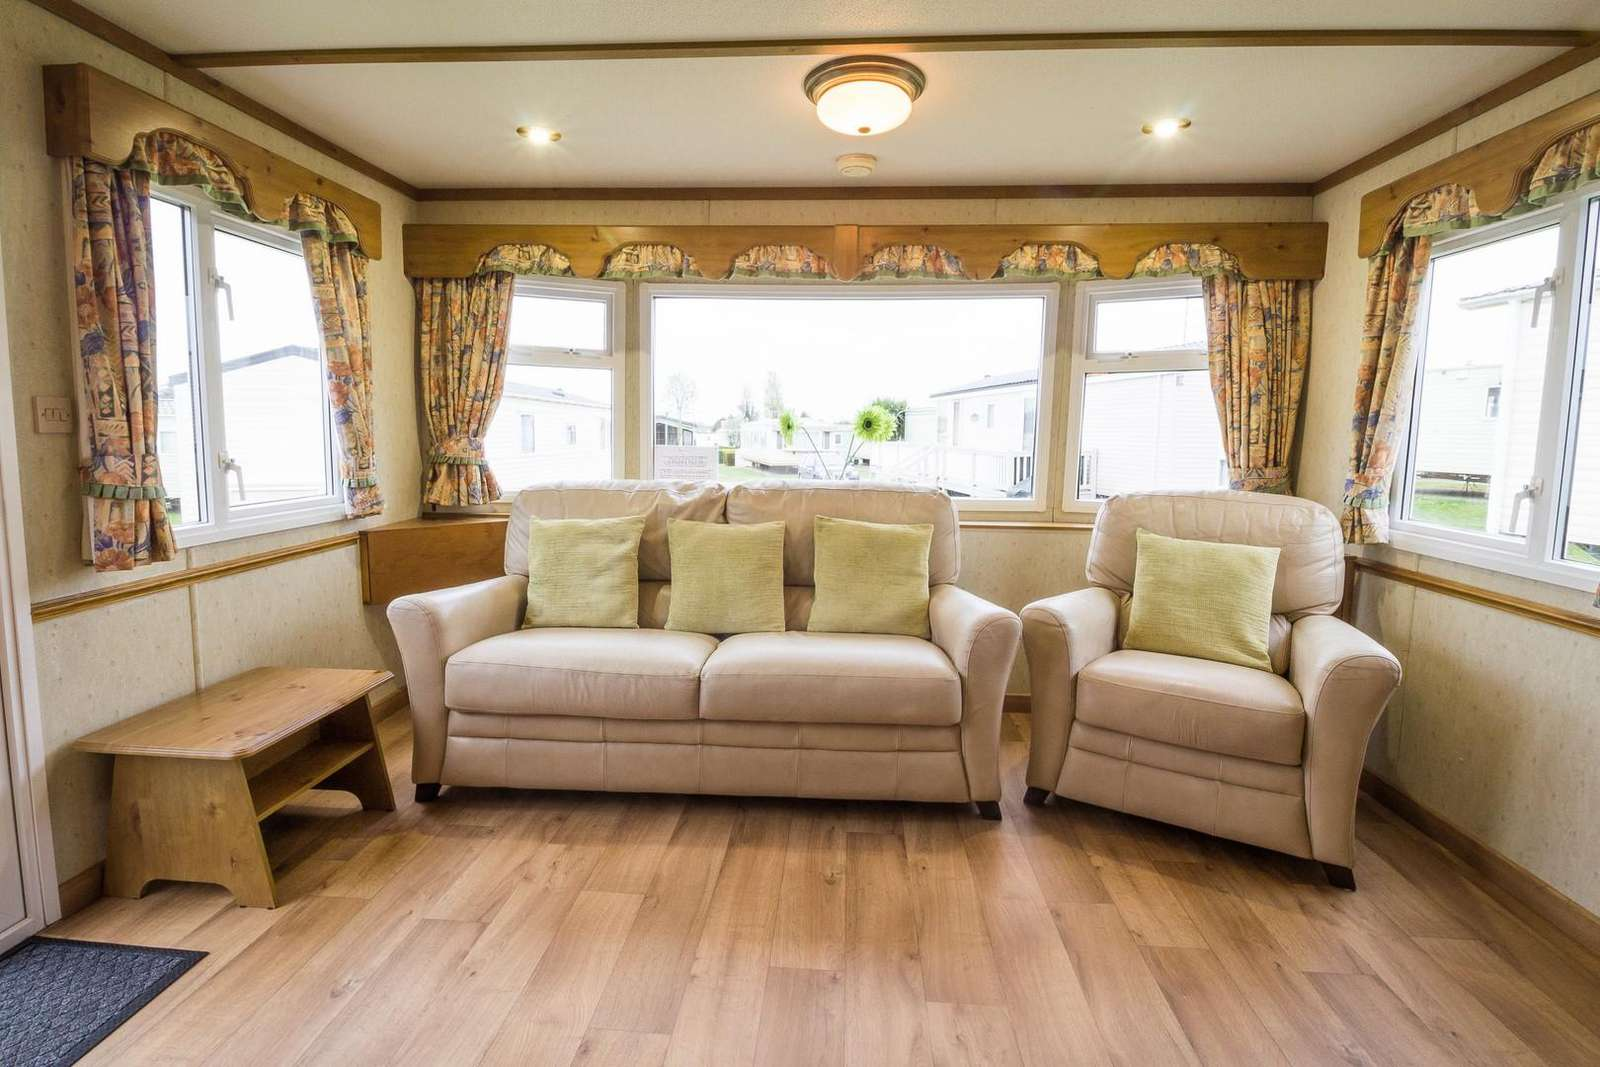 Large caravan for hire with comfortable seating.